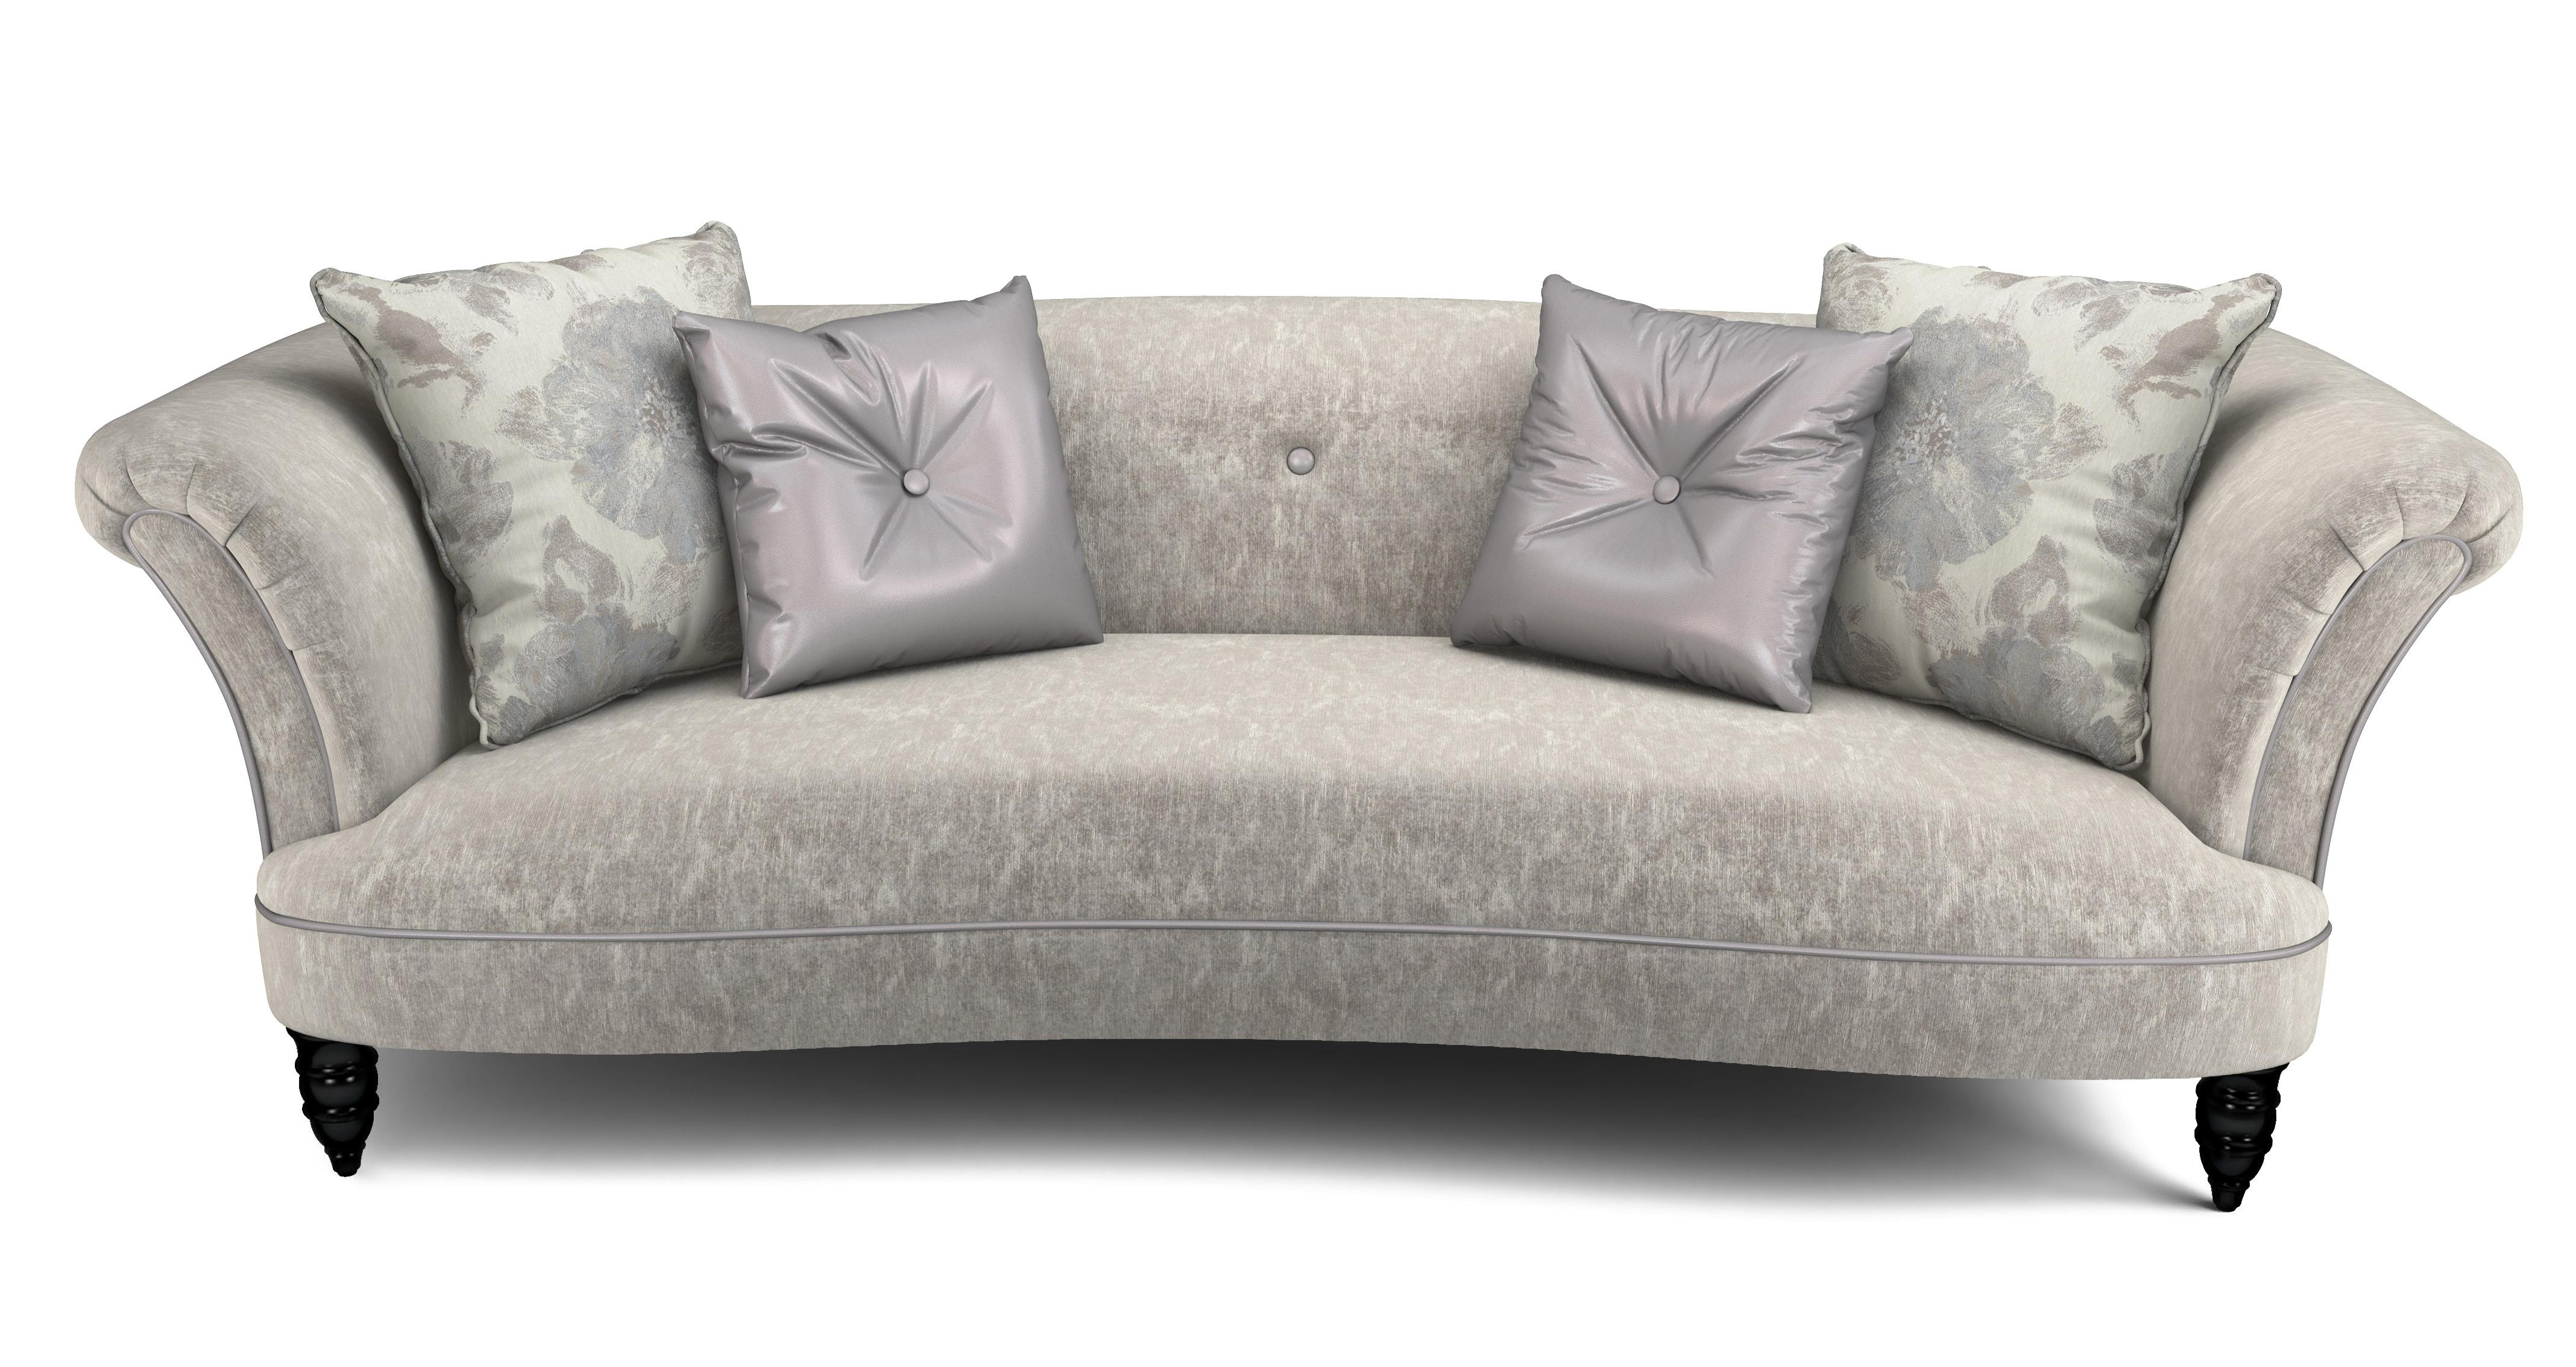 Dfs sofas and chairs uk memsaheb dfs sofas any good 12517 concerto 4 seater sofa dfs parisarafo Image collections